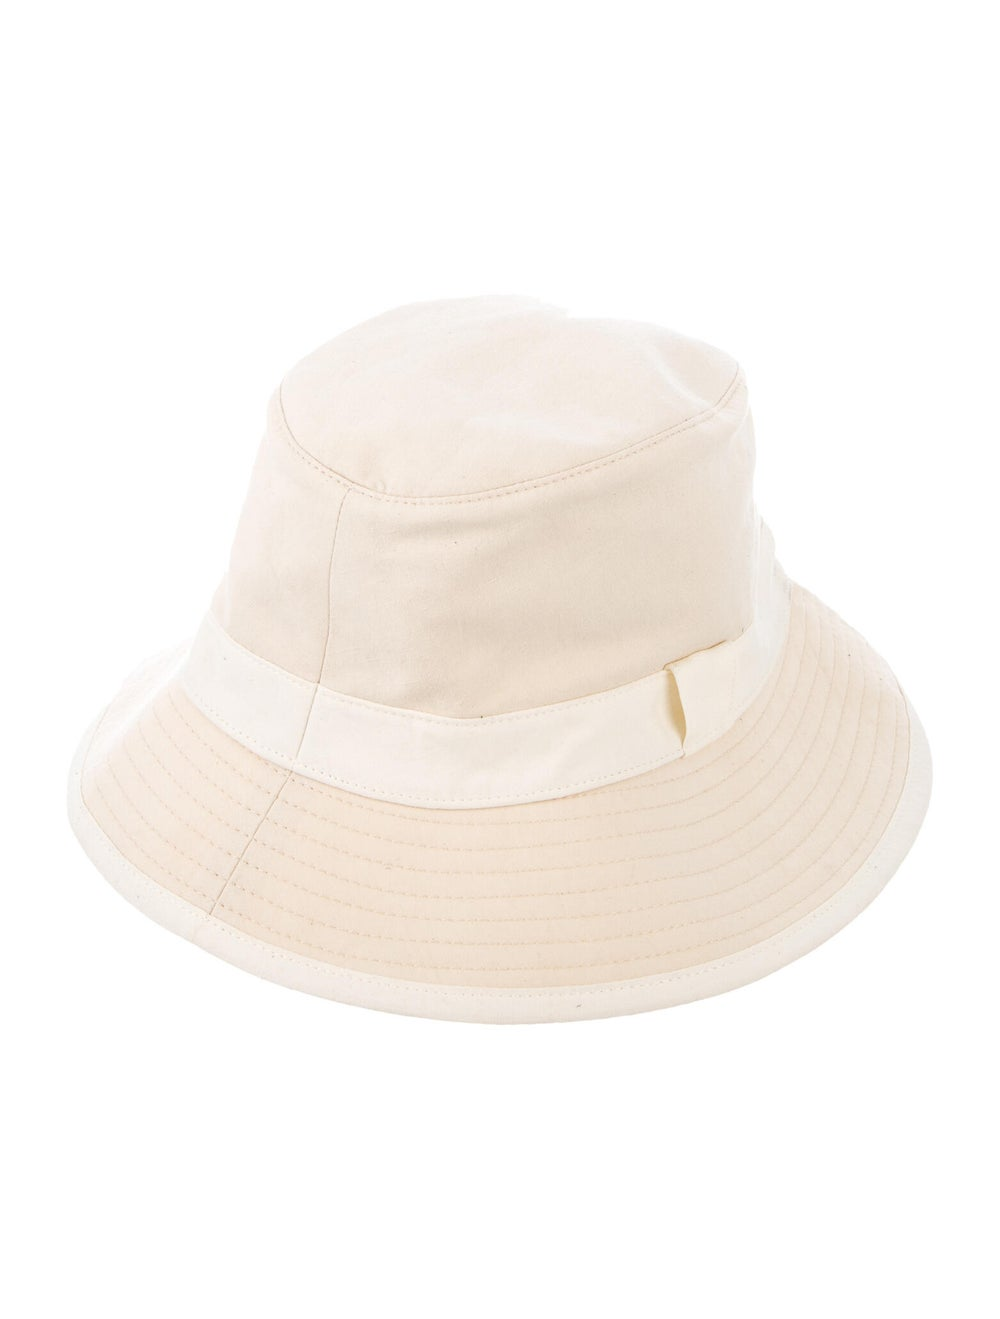 Hermès Canvas Bucket Hat - image 2